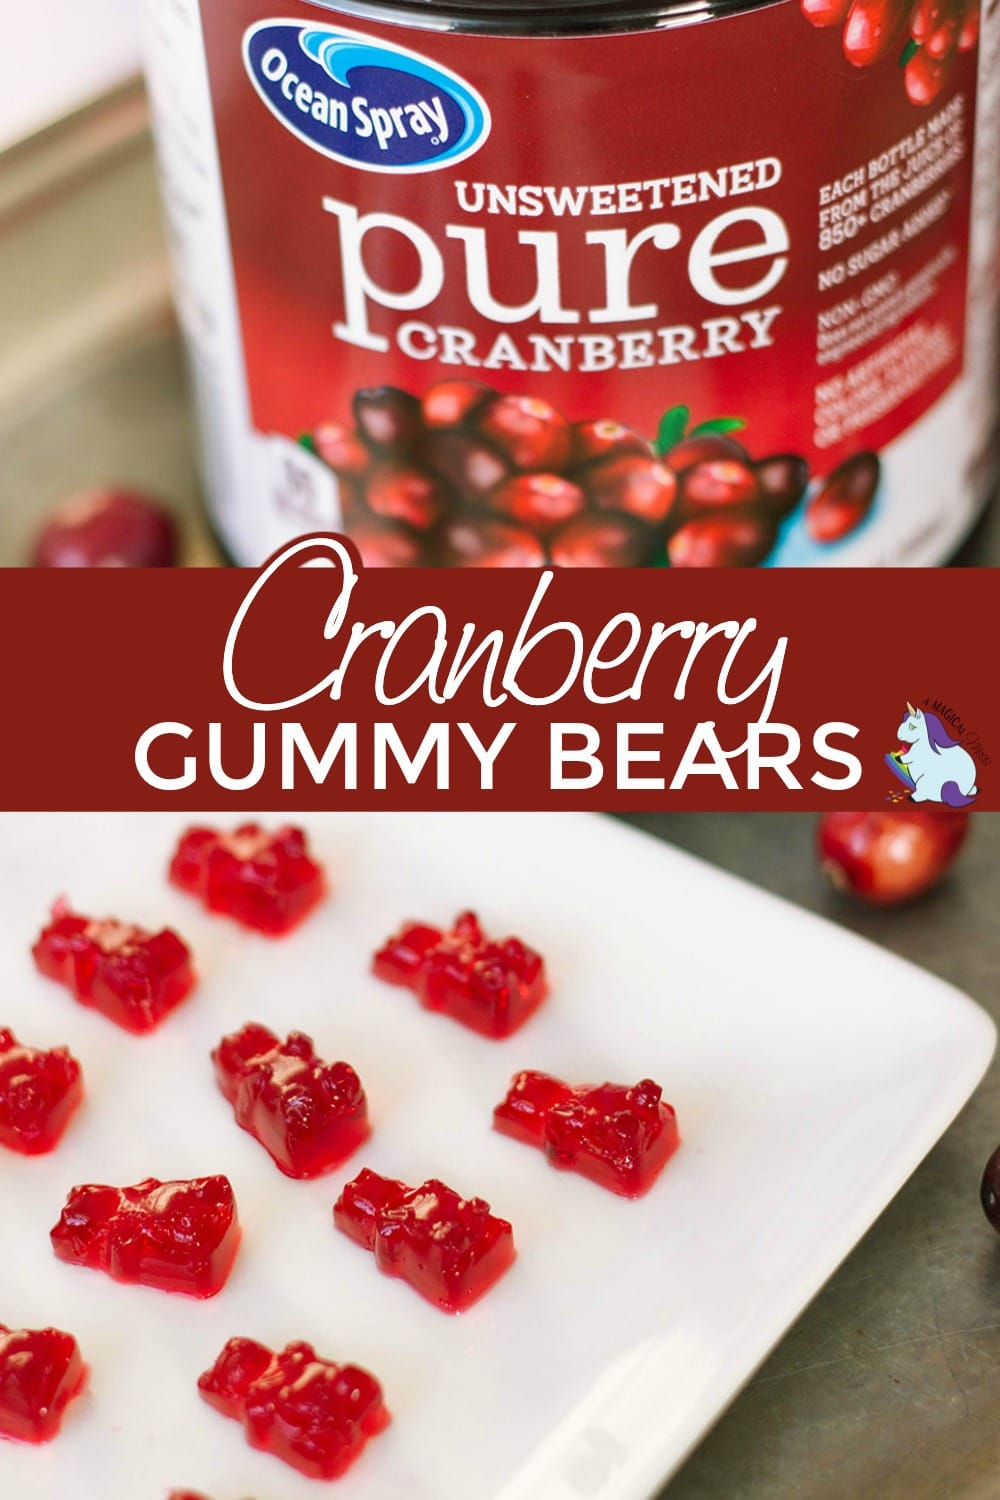 Cranberry juice bottle and plate of gummy bears